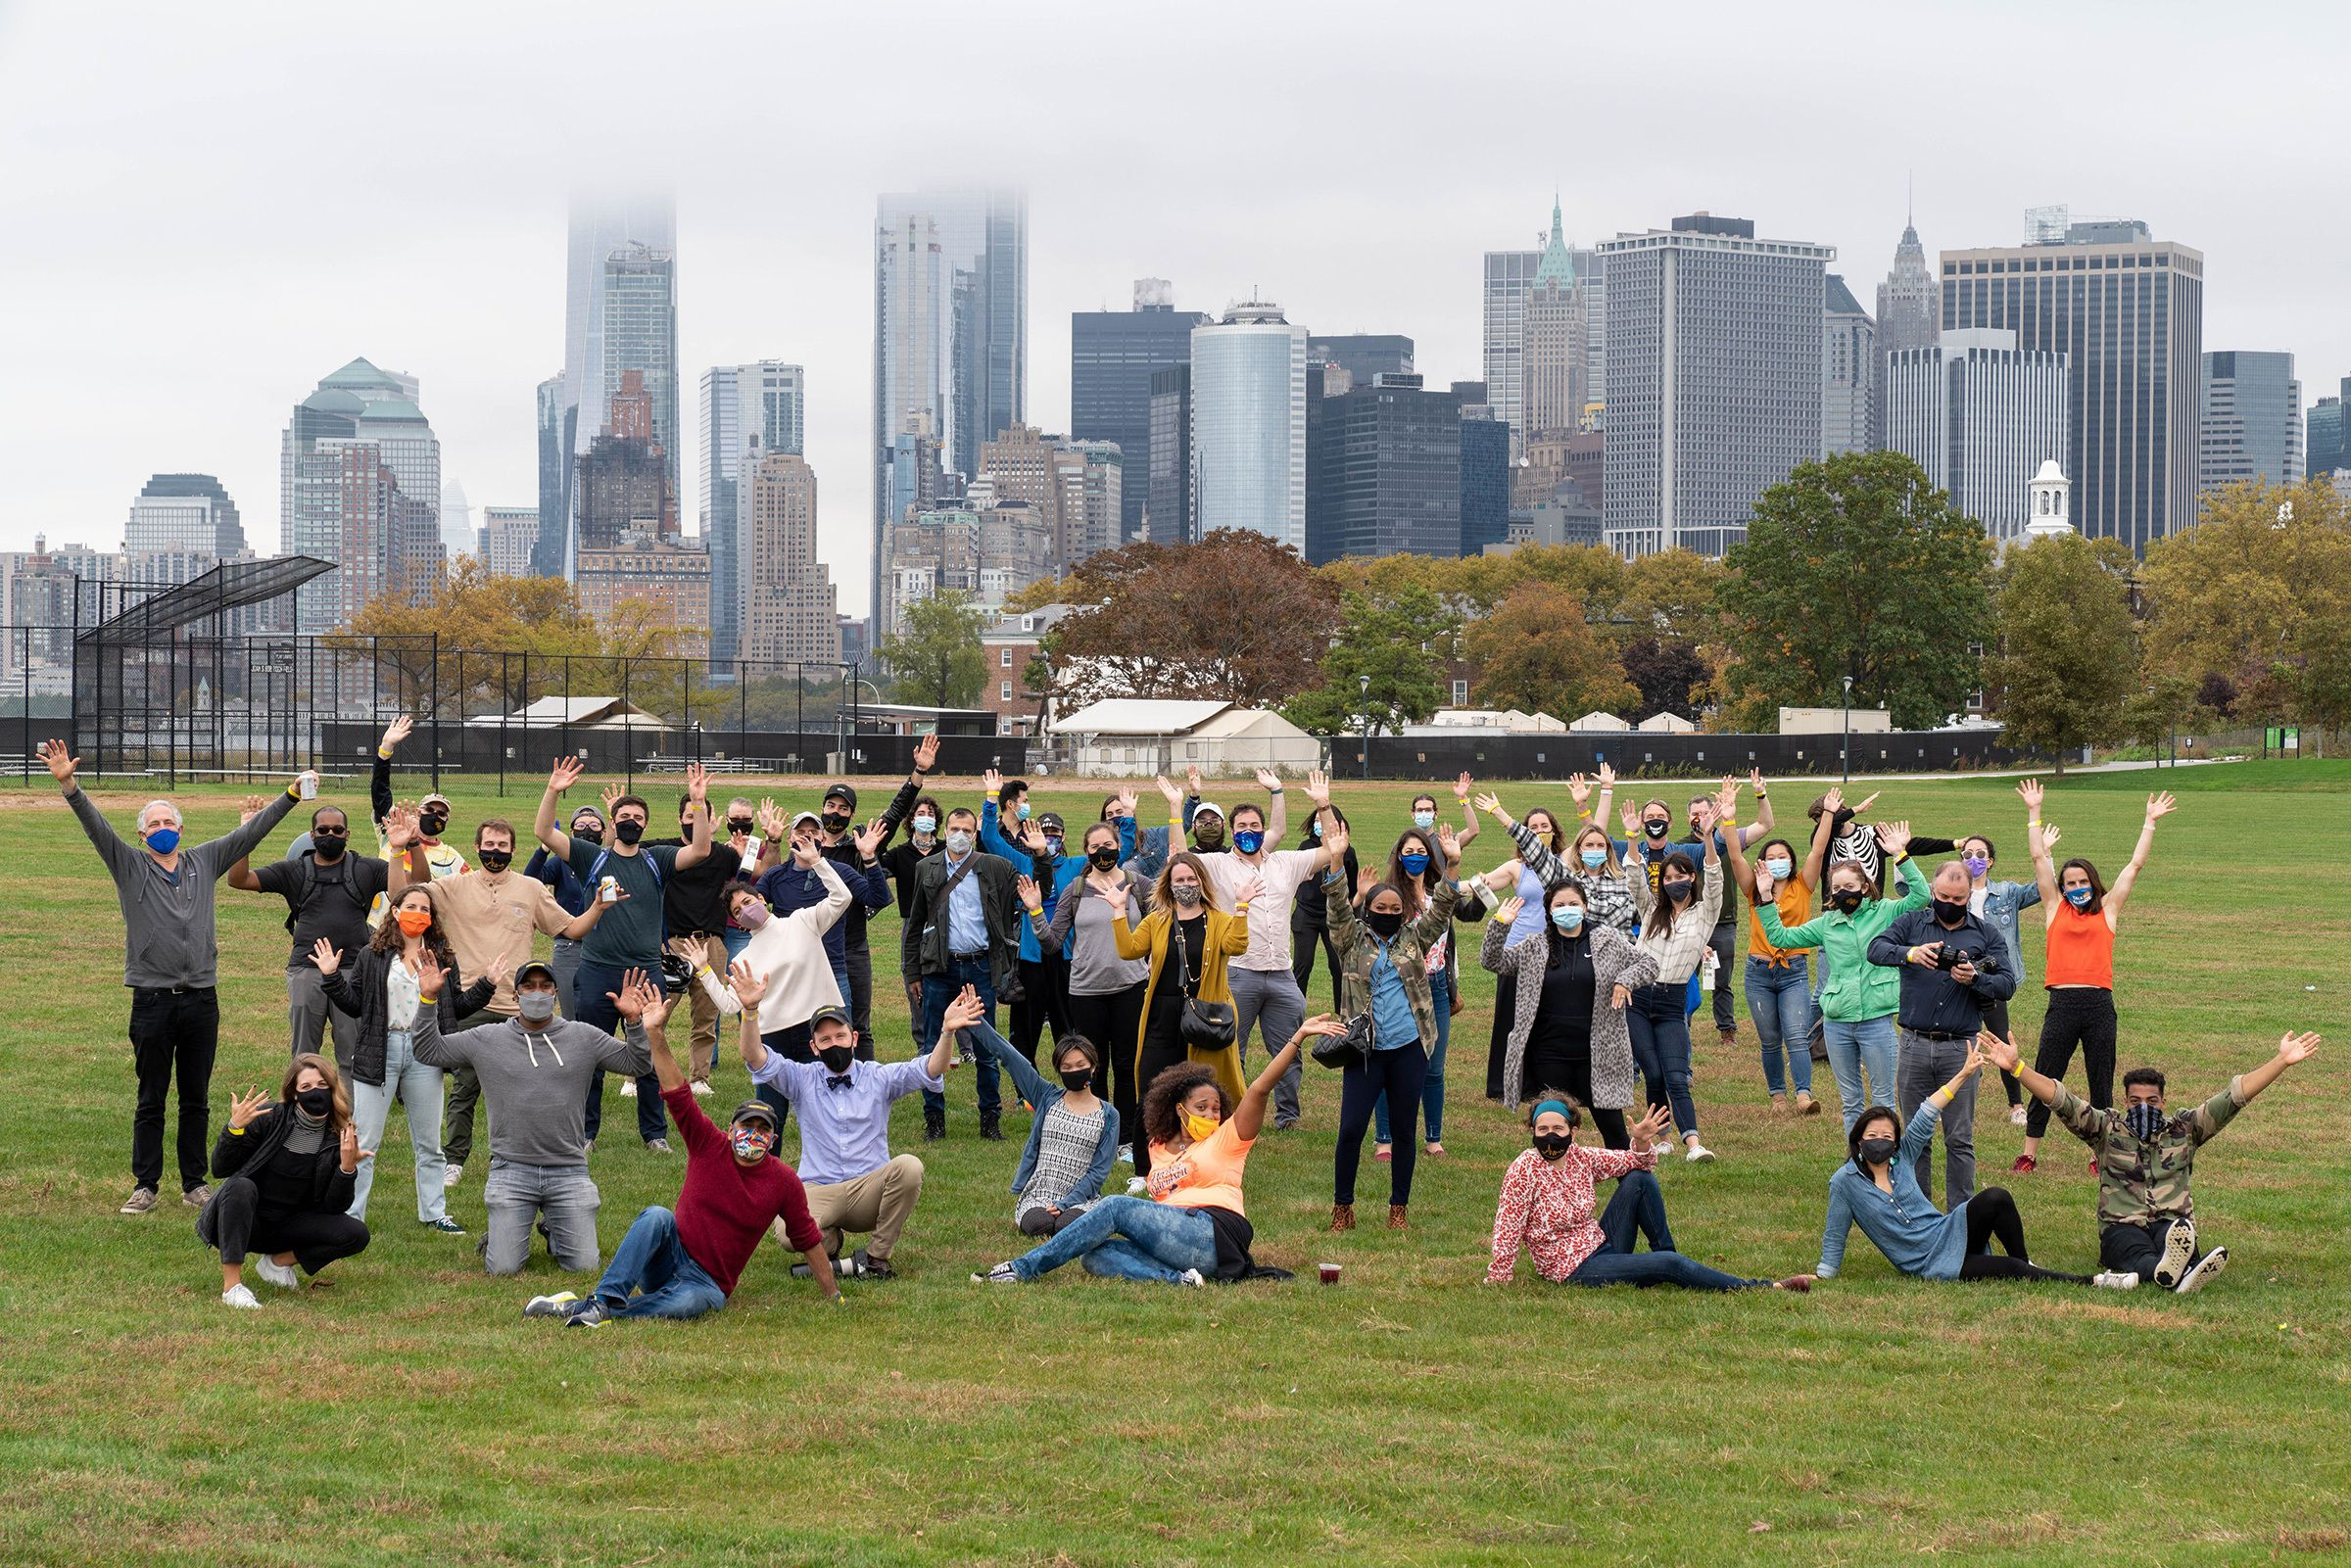 A photo of the Sidewalk Labs team at a park gathering.